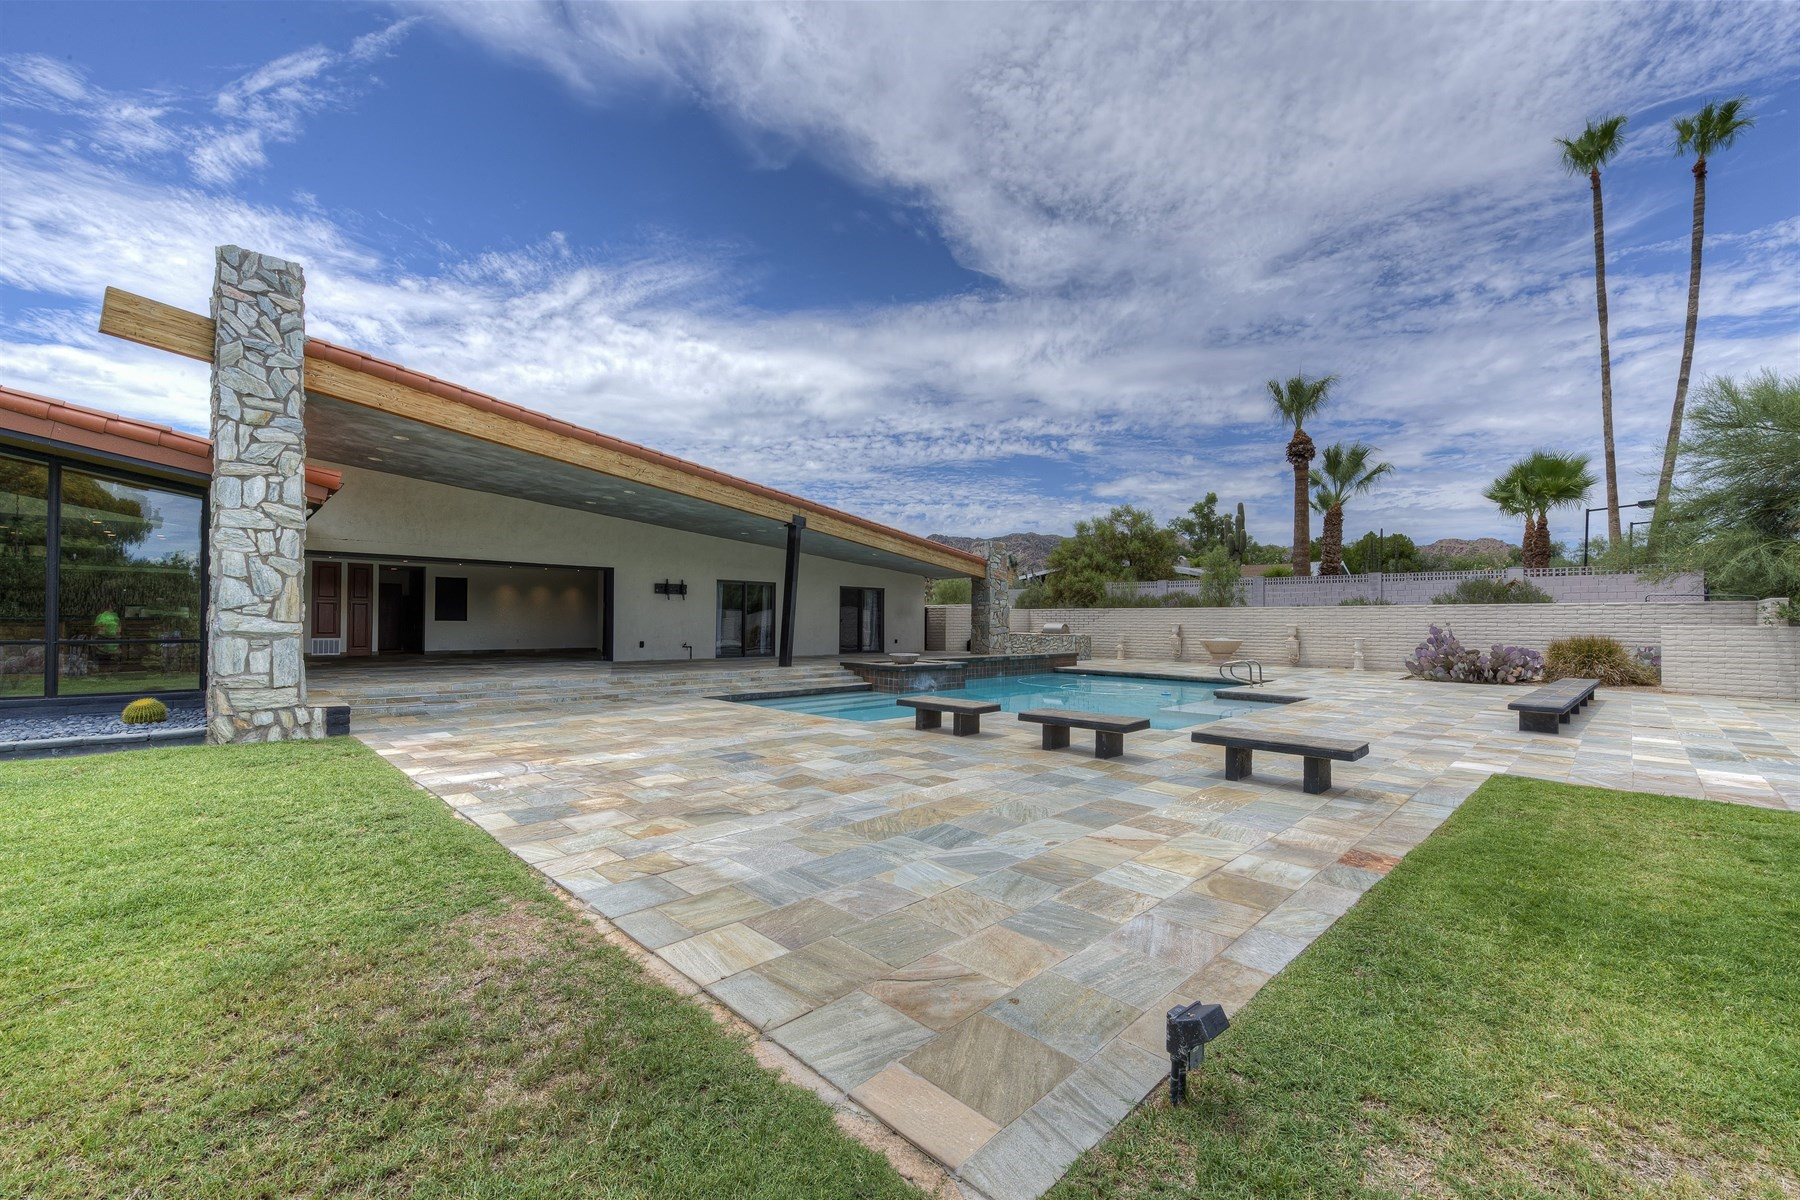 rentals property at Sprawling Mid-Century Modern Paradise Valley home